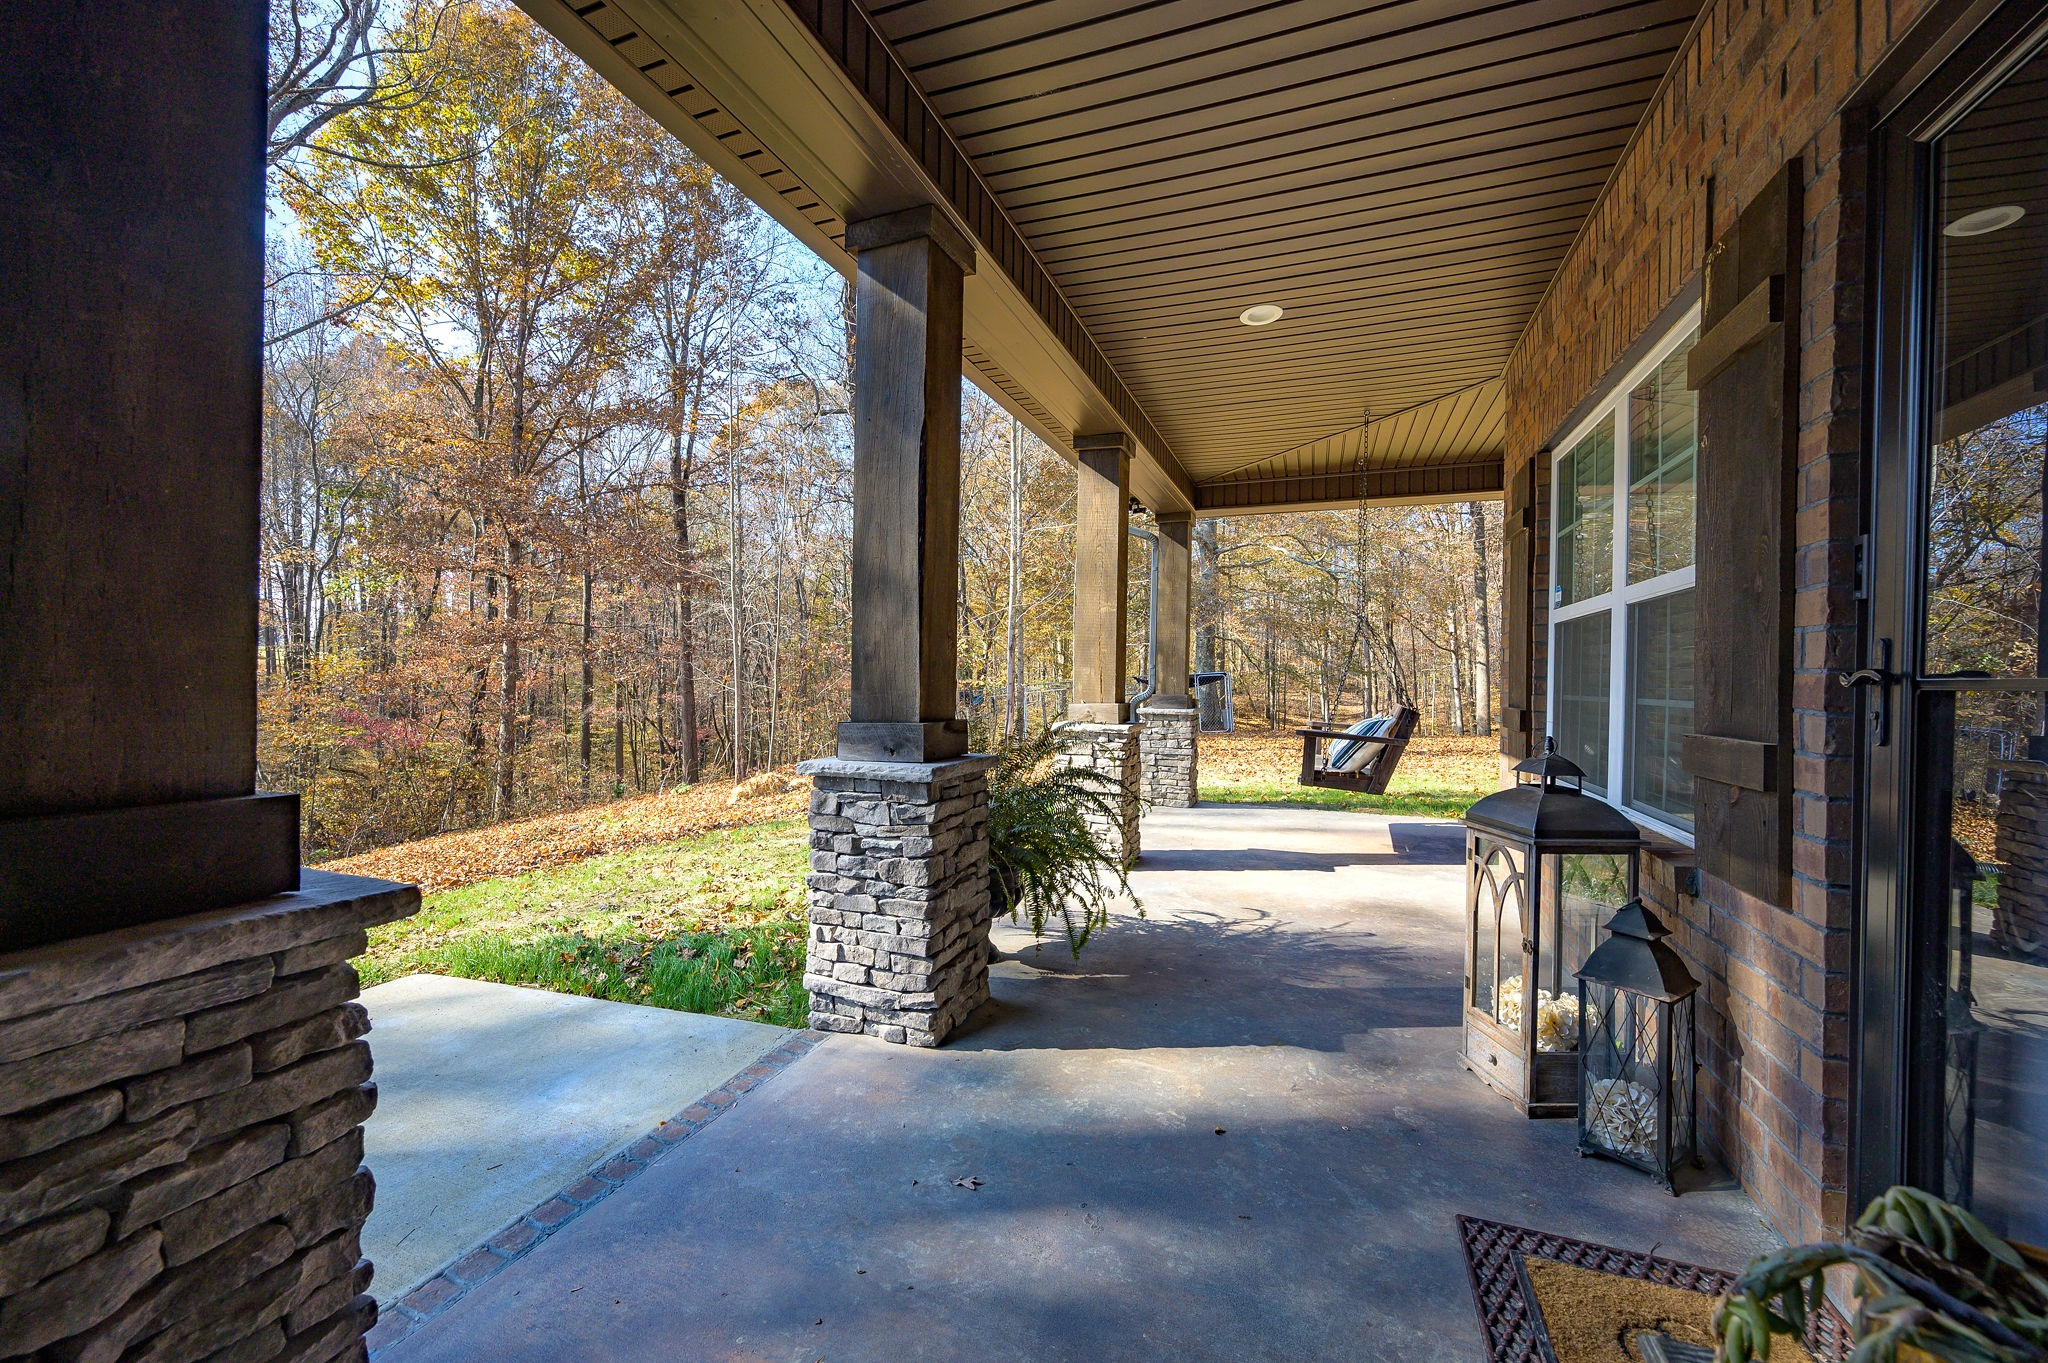 65 Sheltontown Rd, Manchester, Tennessee